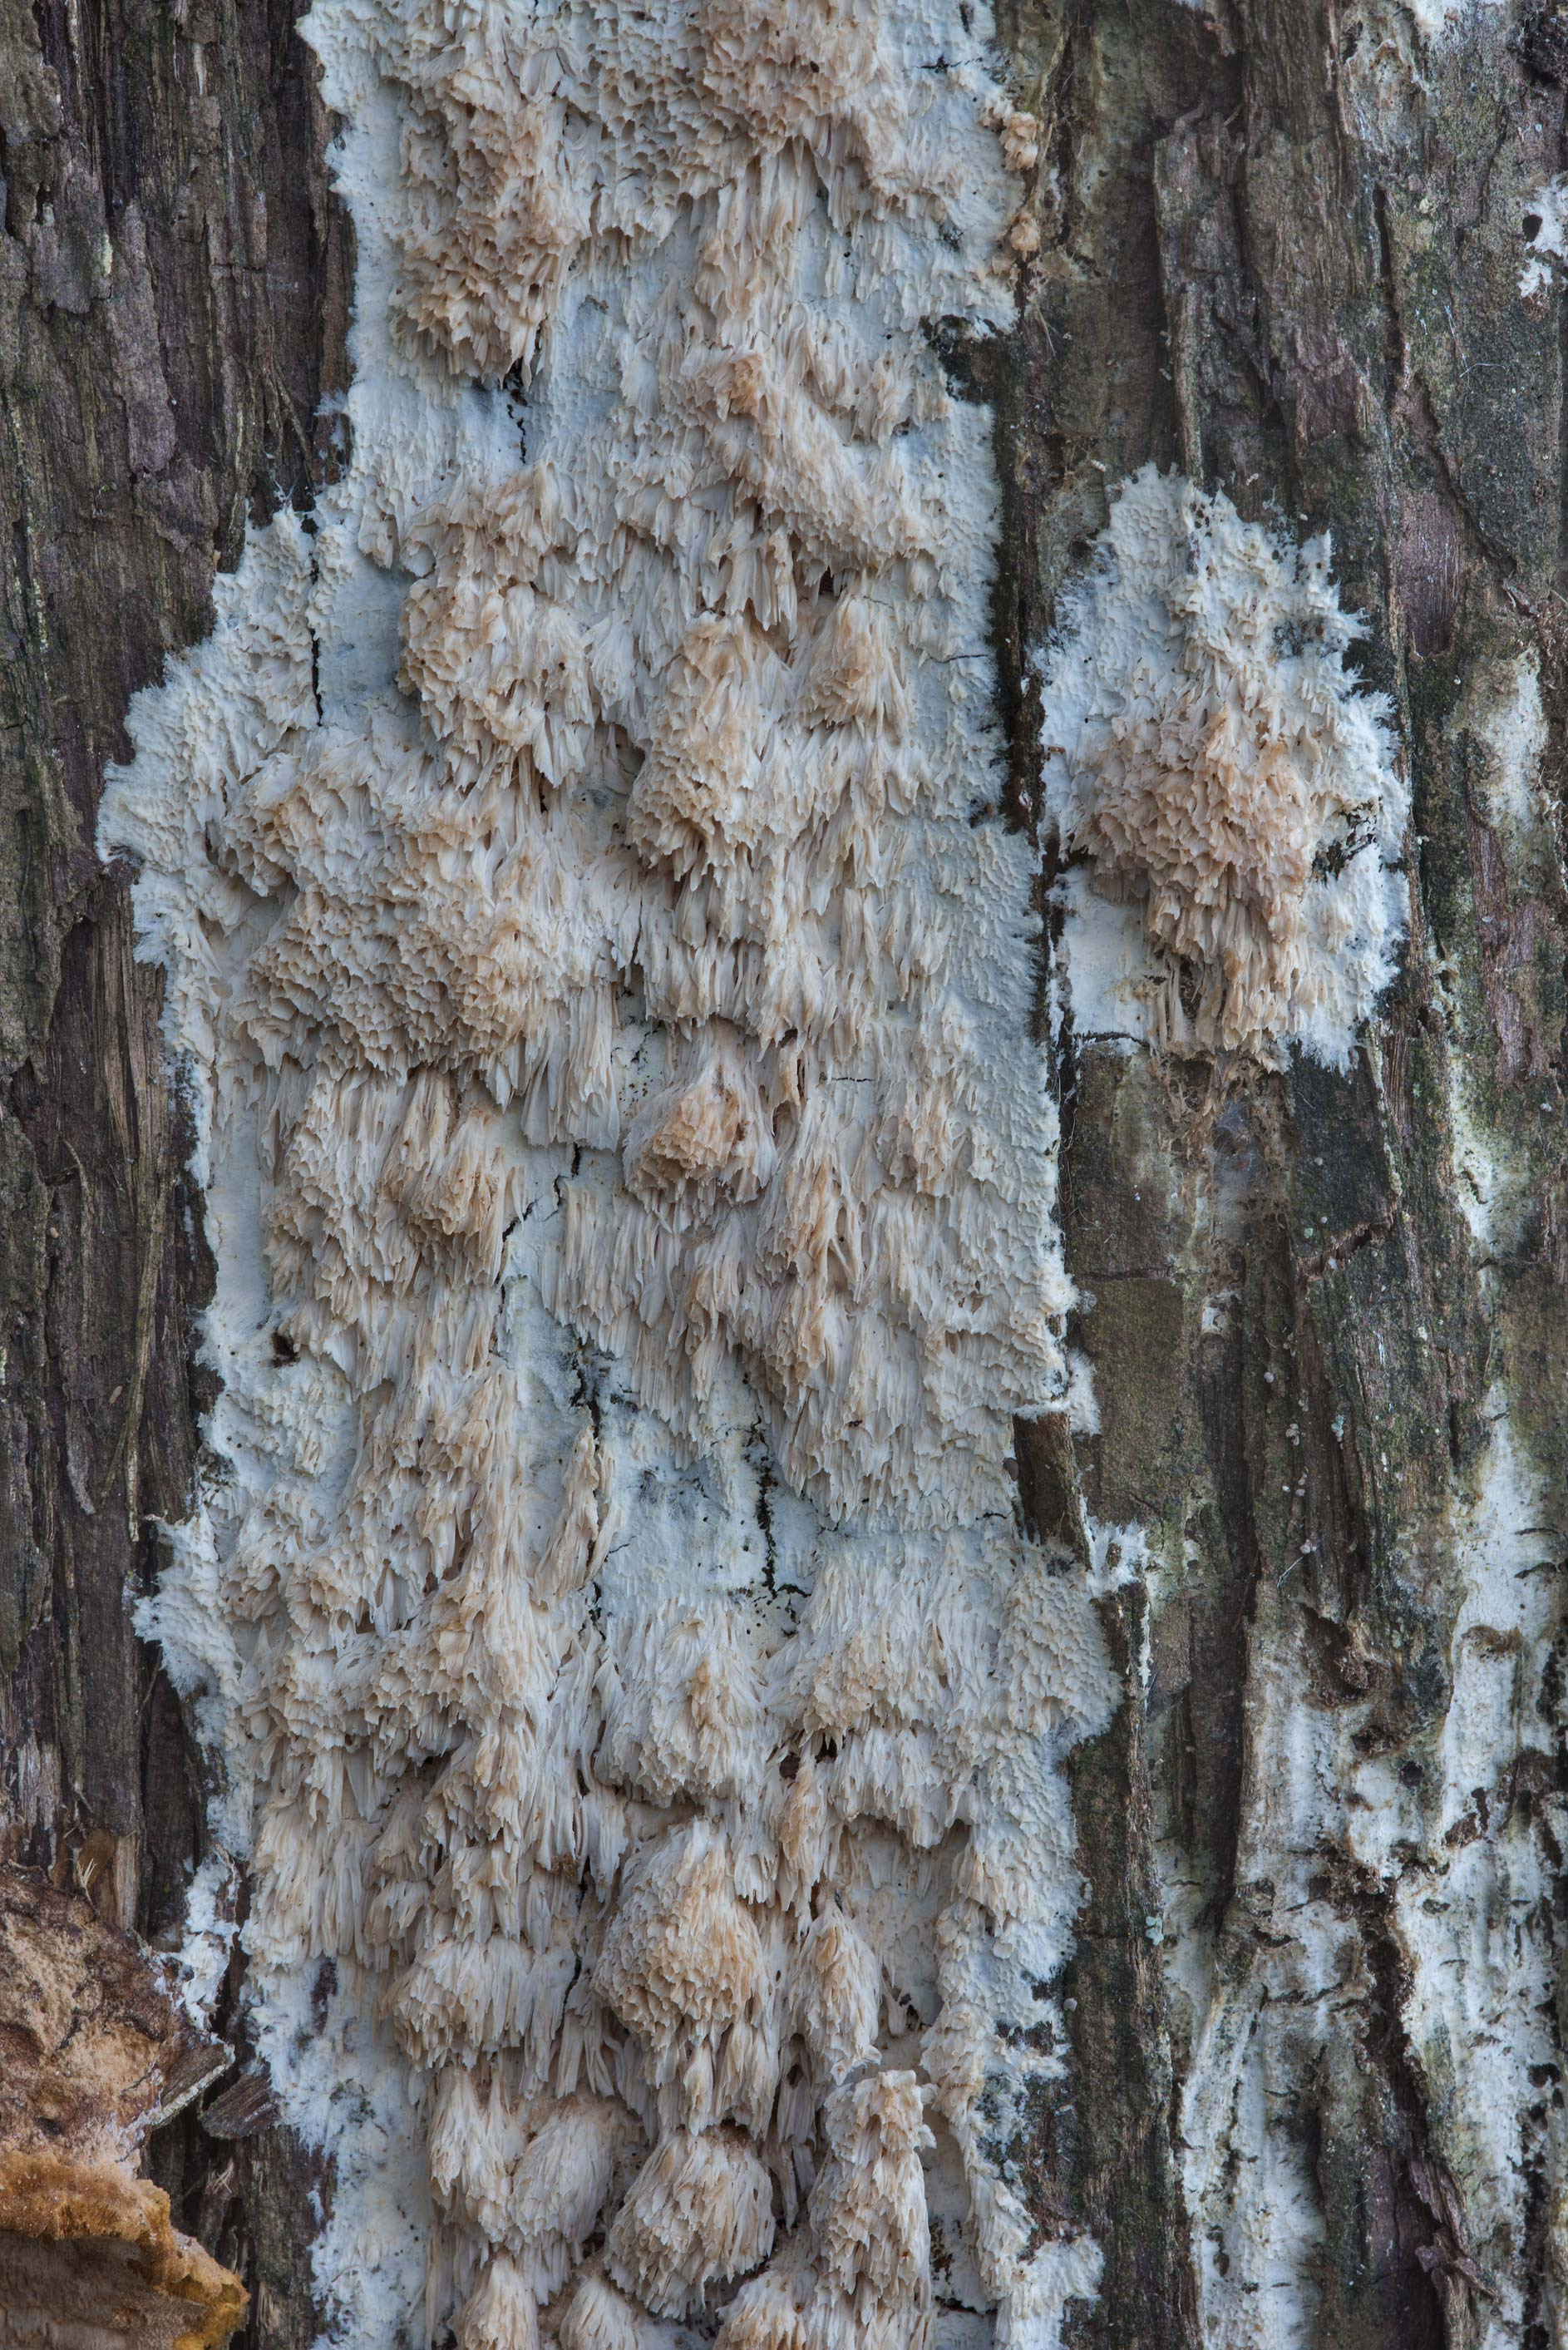 Some porous crust fungus on a dry red cedar tree in Lake Bryan Park. Bryan, Texas